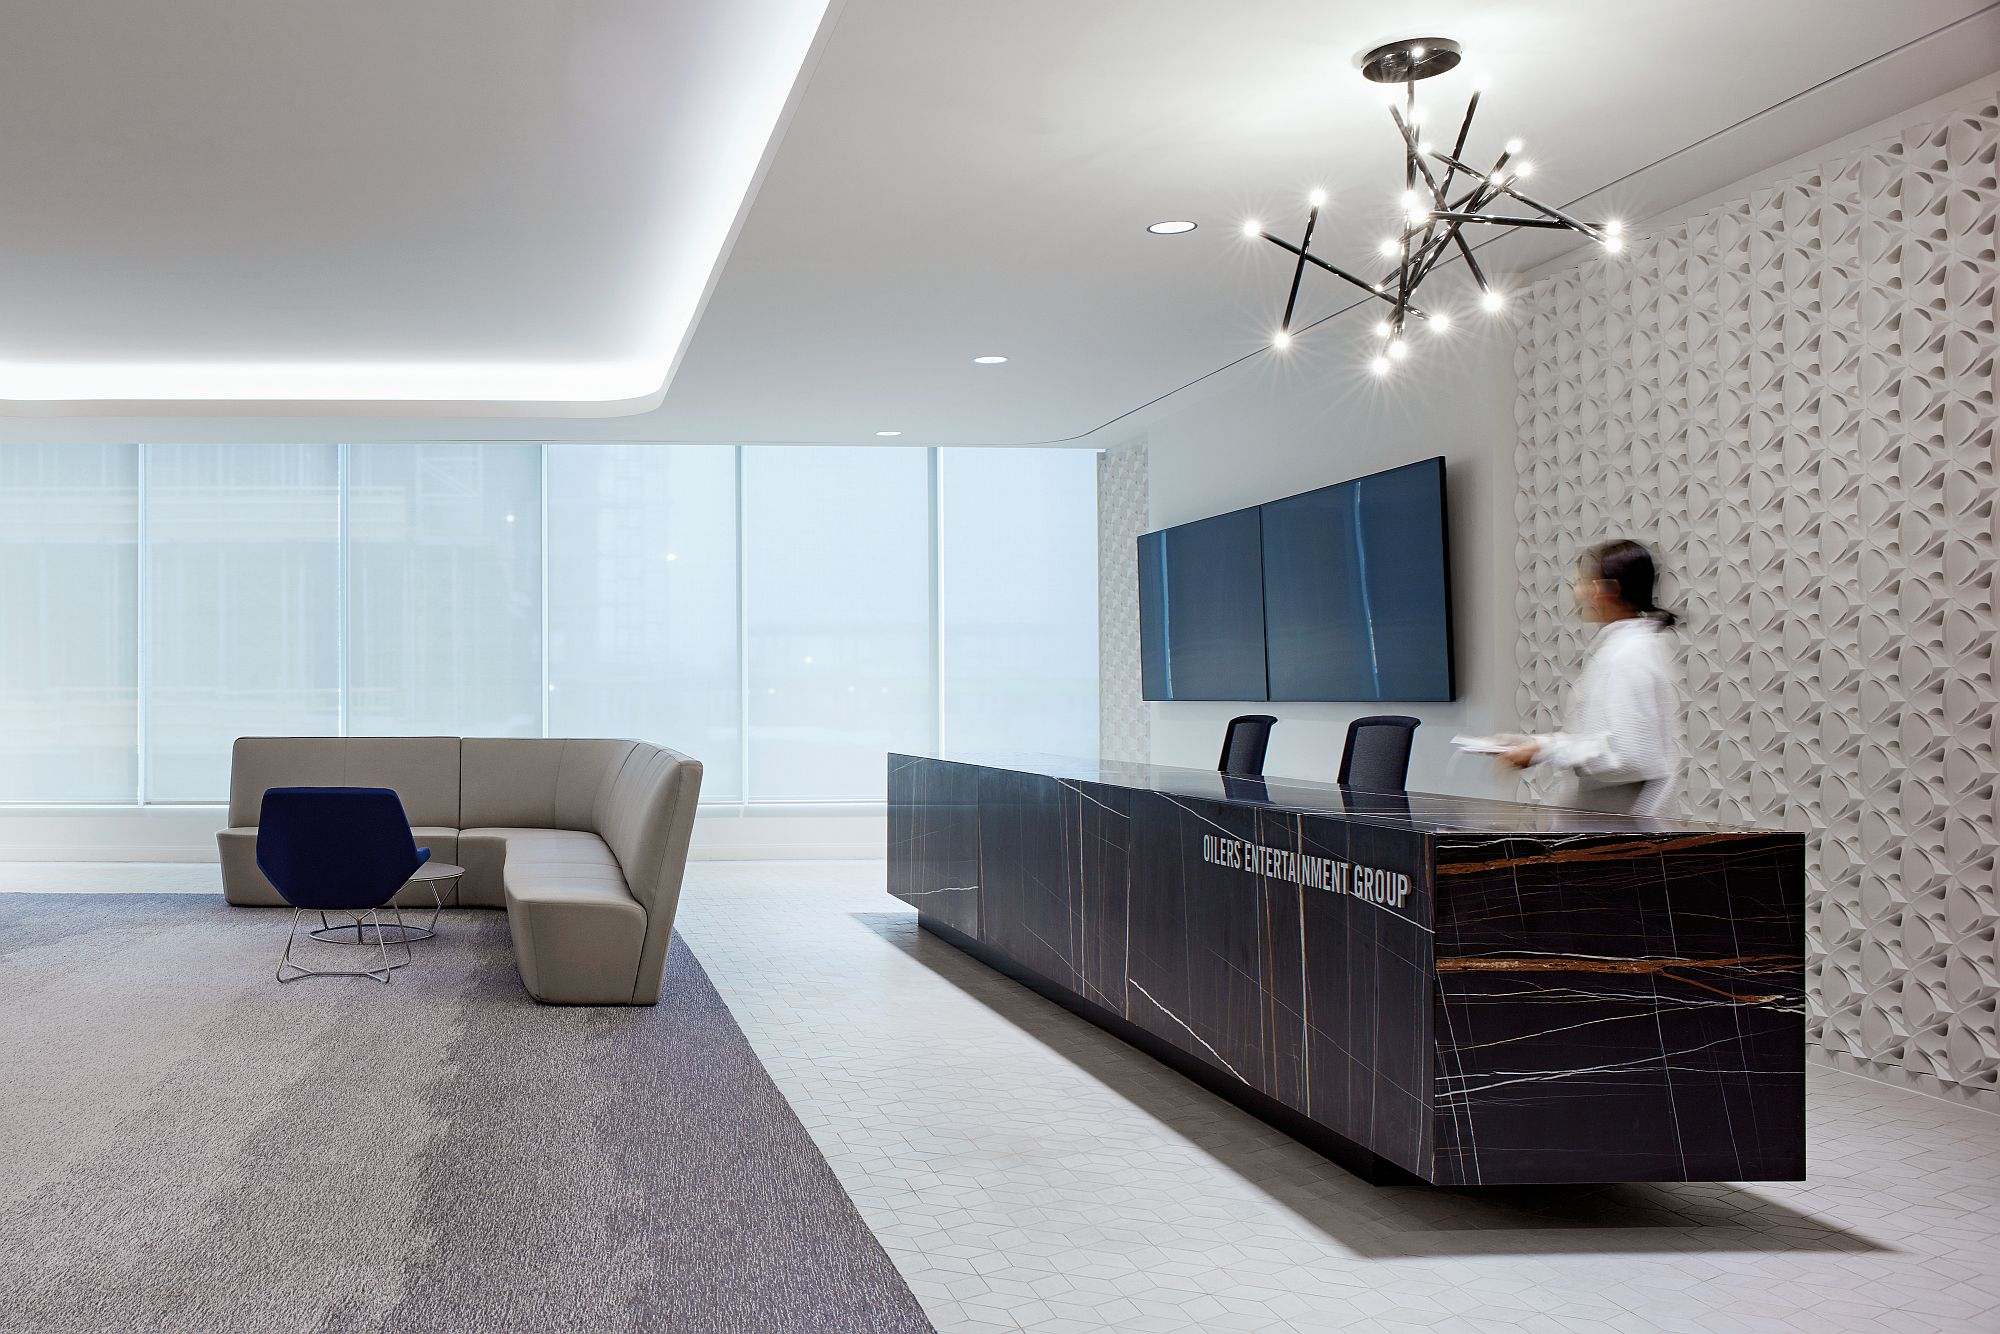 Captivating and sophisticated reception of the OEG office Inventive Oilers Entertainment Group Office Inspired by Ice Hockey Motifs